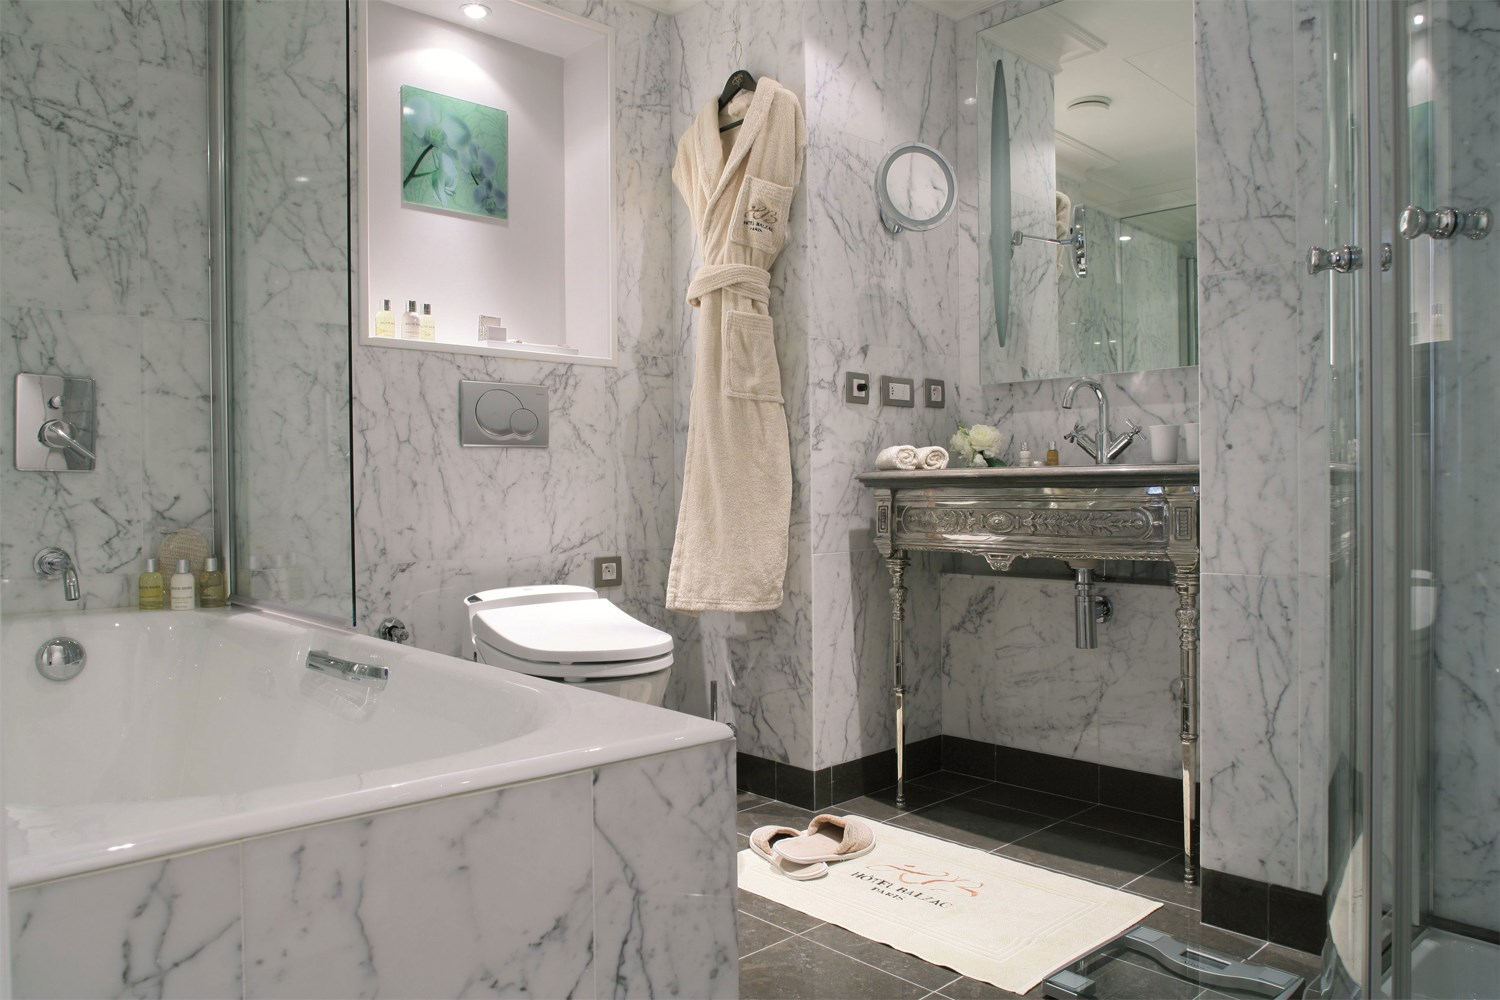 Bathroom Junior Suite Hotel Balzac Paris